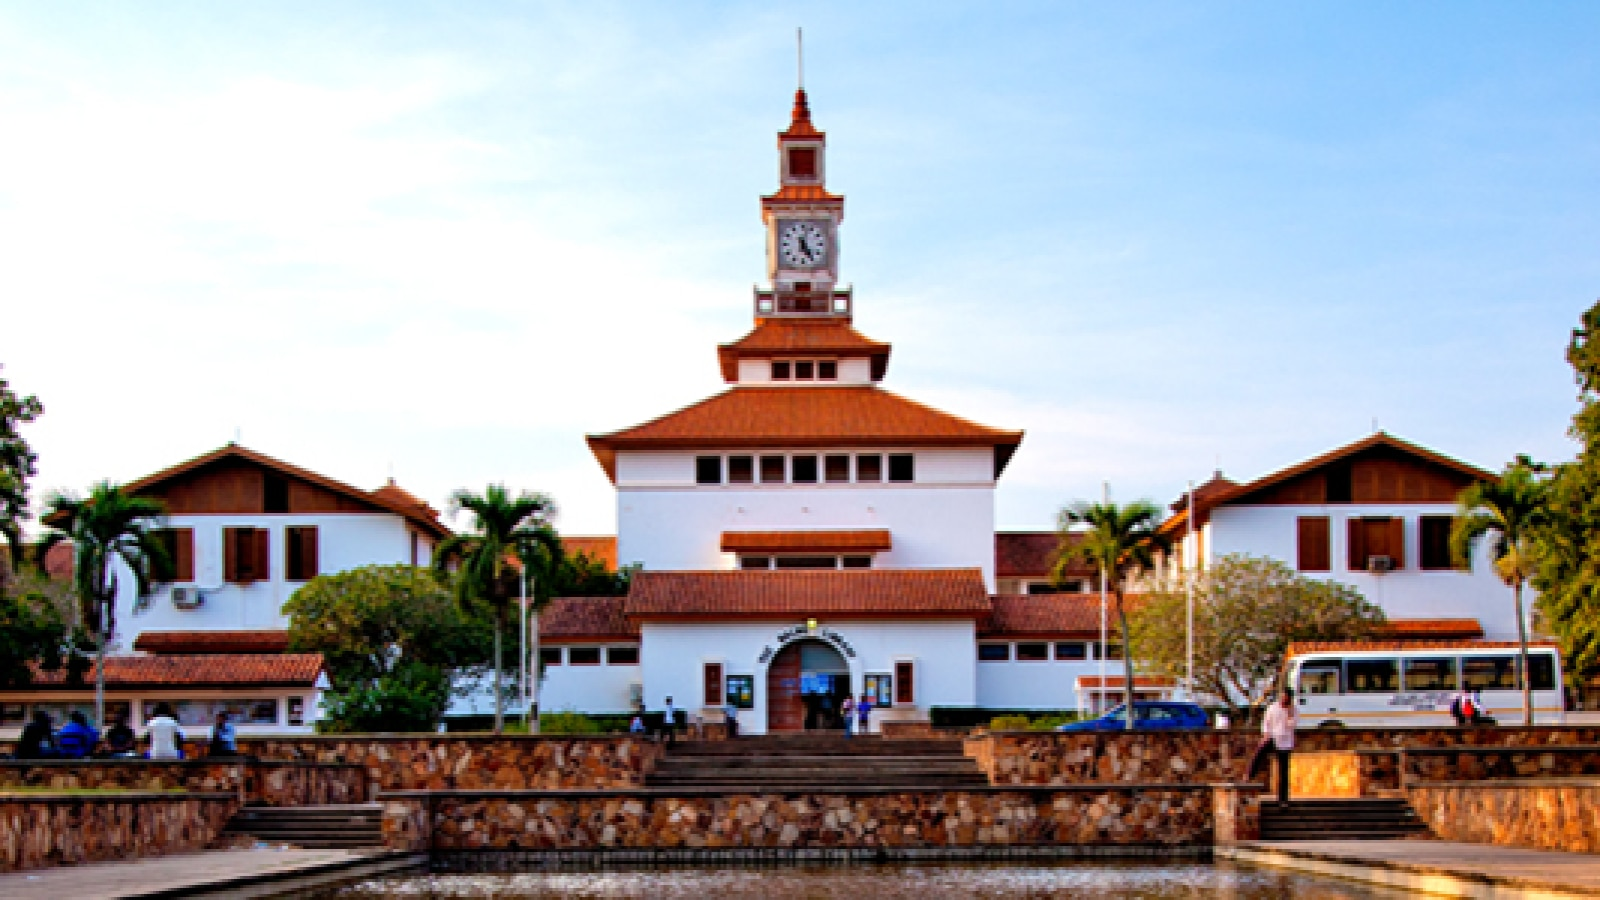 Sexforgrades University Of Ghana Lecturers To Appear Before Anti-Sexual Harassment